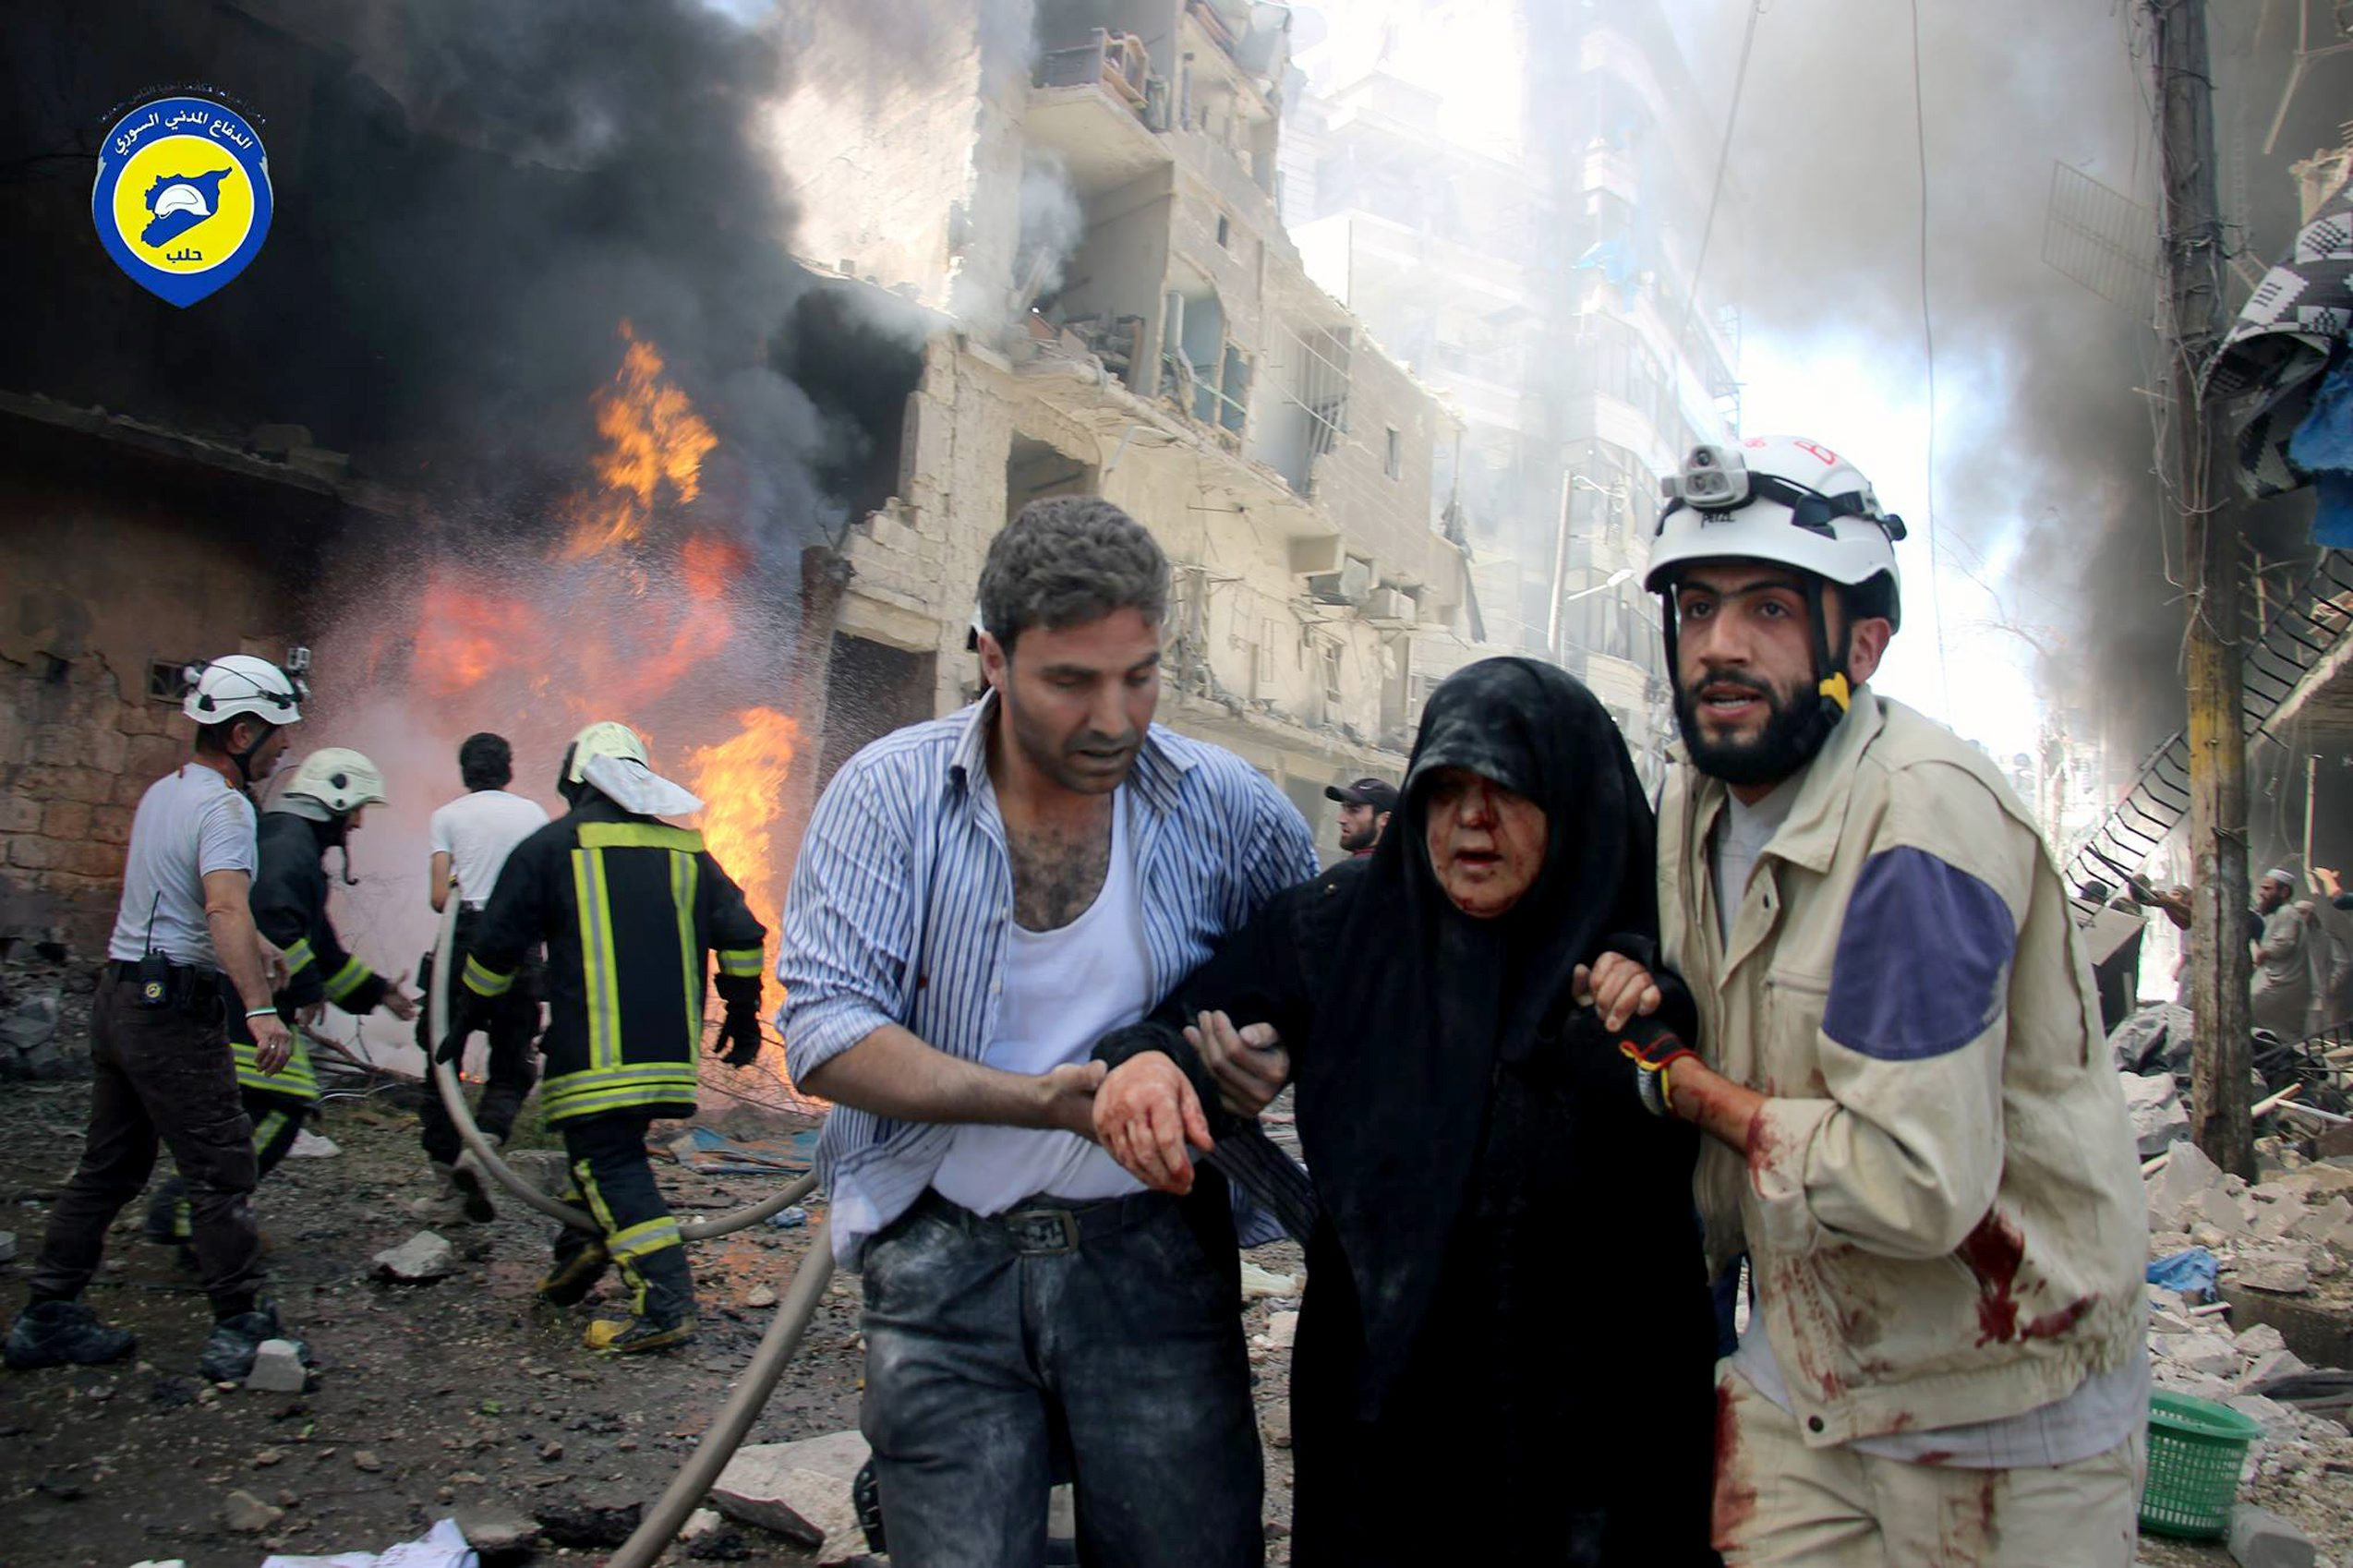 FILE - In this file photo taken on June 8, 2016 provided by the Syrian Civil Defense Directorate in Liberated Province of Aleppo, which has been authenticated based on its contents and other AP reporting, shows Syrian civil defense workers, right, helps an injured woman after warplanes attacked a street, in Aleppo, Syria. Residents trapped in rebel-controlled Aleppo are struggling to survive the crippling encirclement of their once thriving city. Bread, medication and fuel are running short. For the tens of thousands who chose to remain, the battle for Aleppo is a pivot point in the Syrian war. (Civil Defense Directorate in Liberated Province of Aleppo via AP, File)